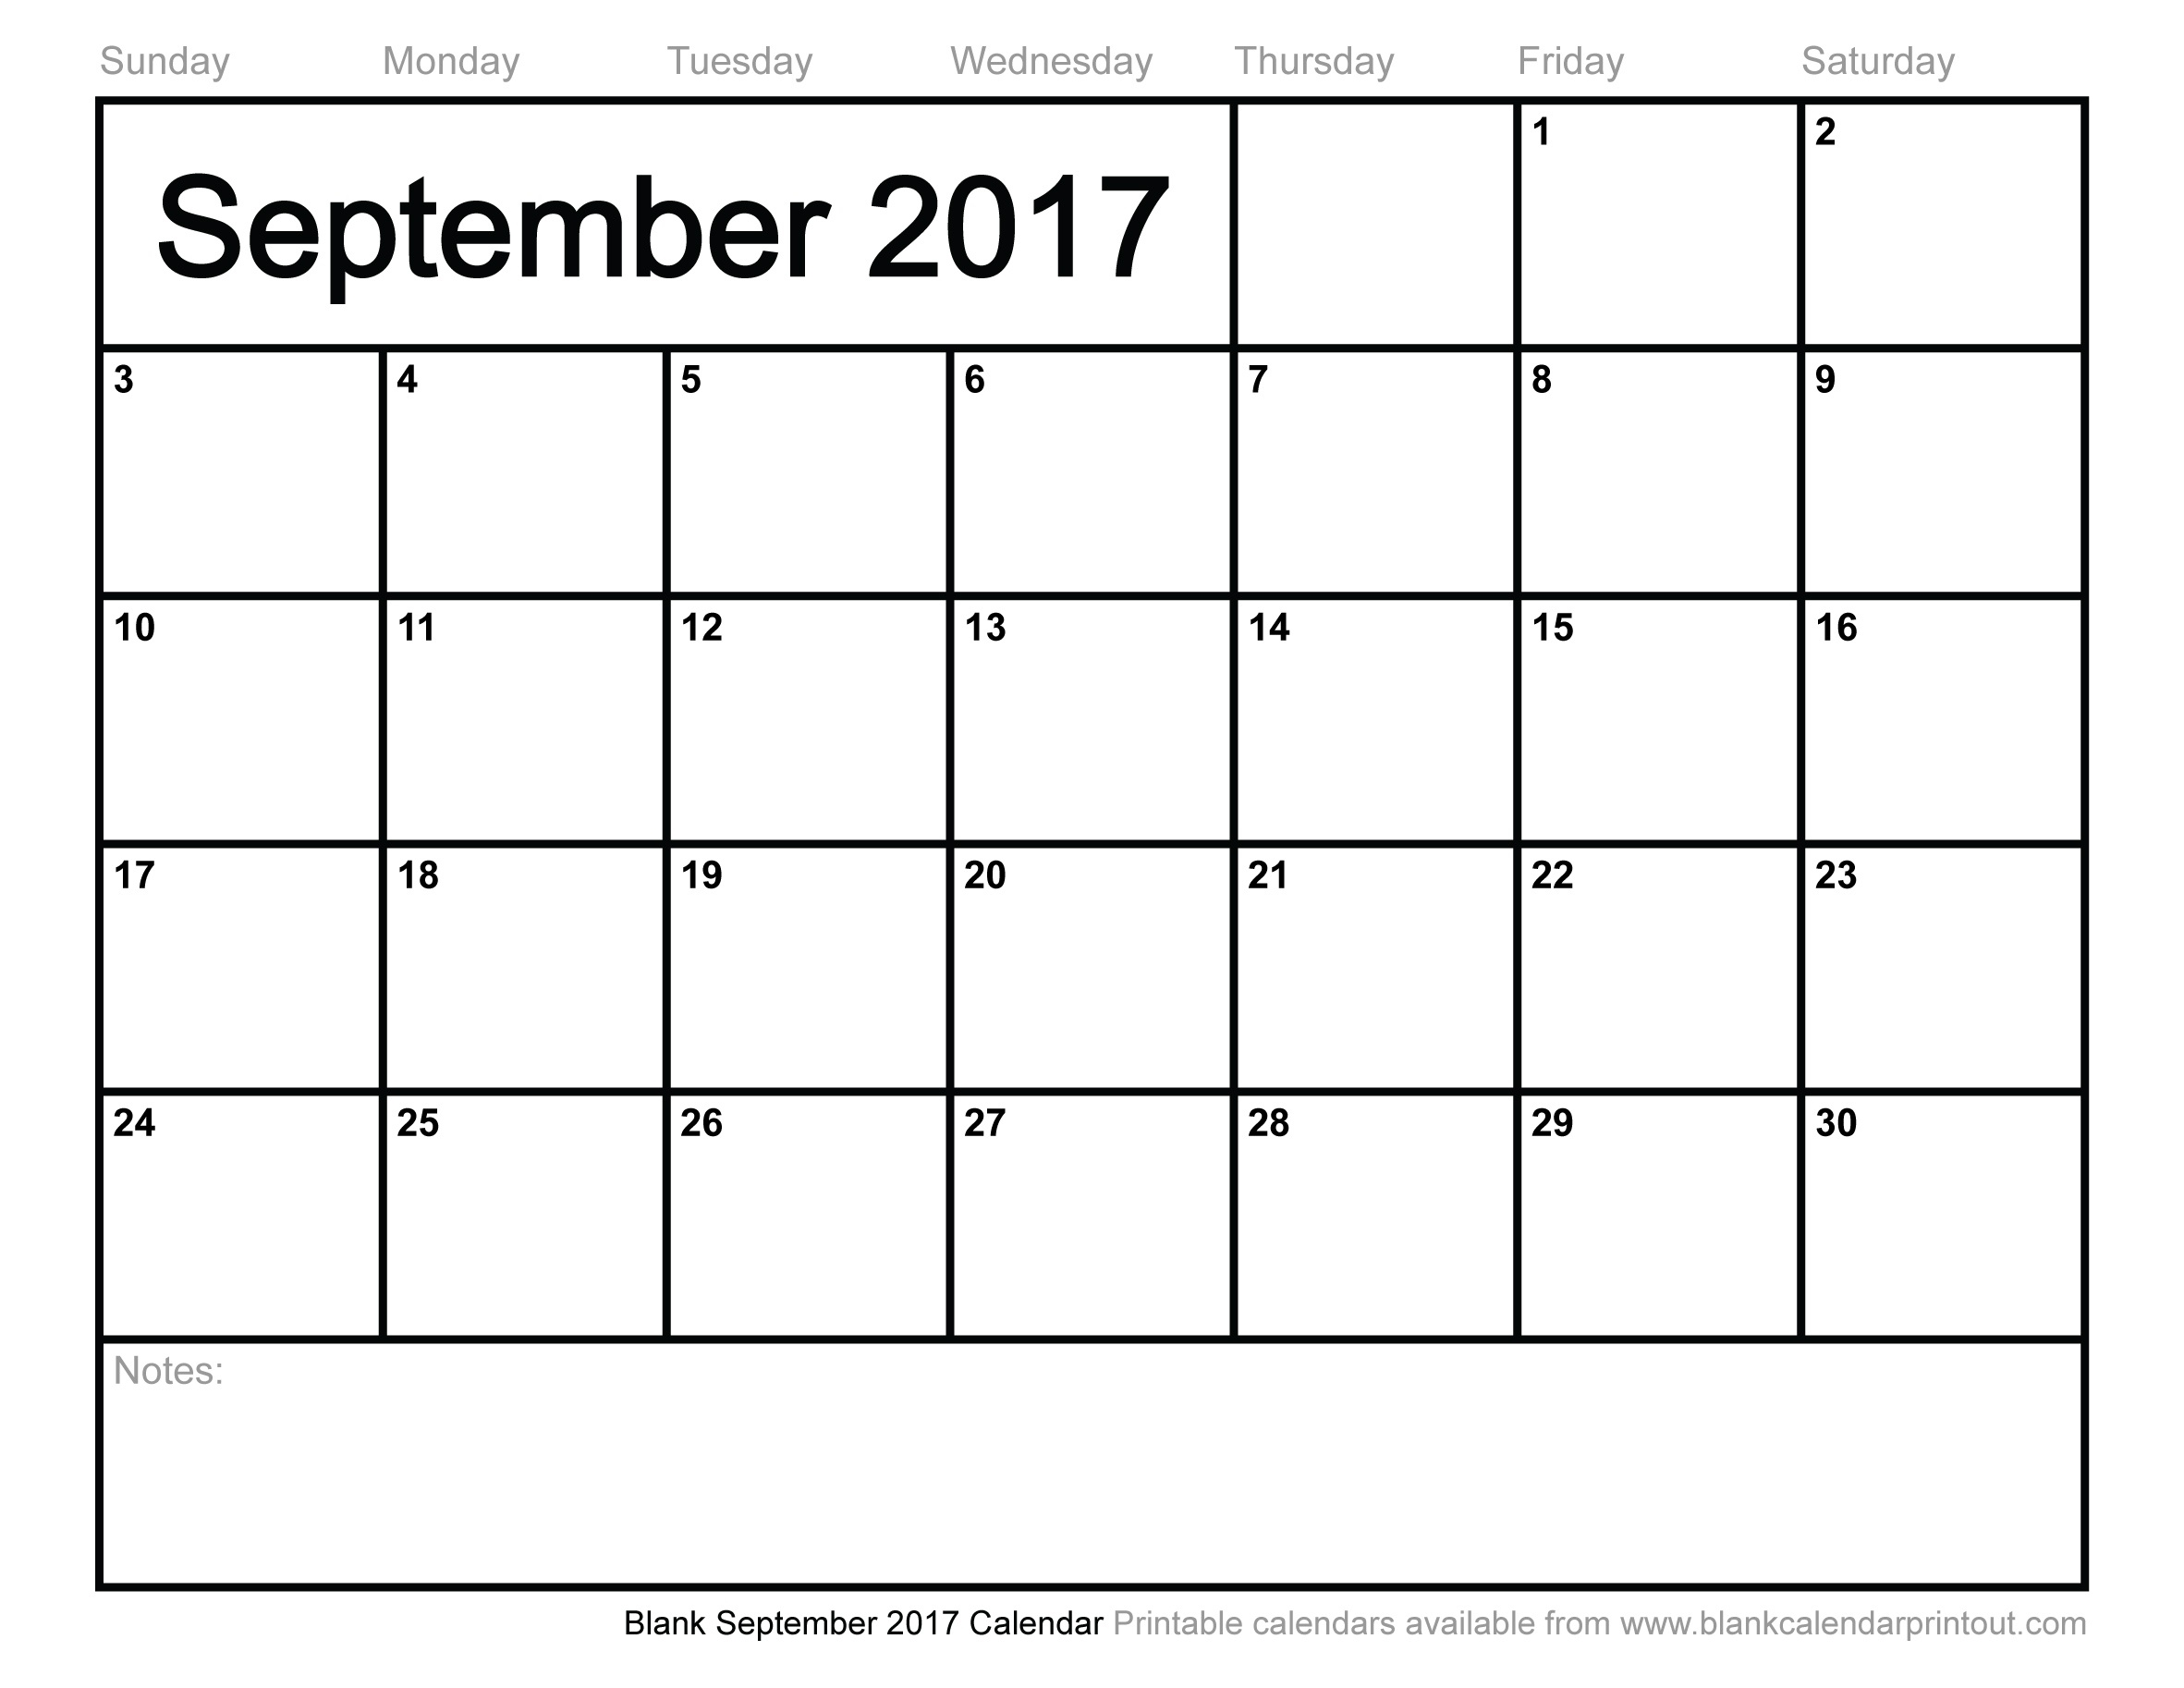 Blank September 2017 Calendar To Print  Calendar For The Month Of September